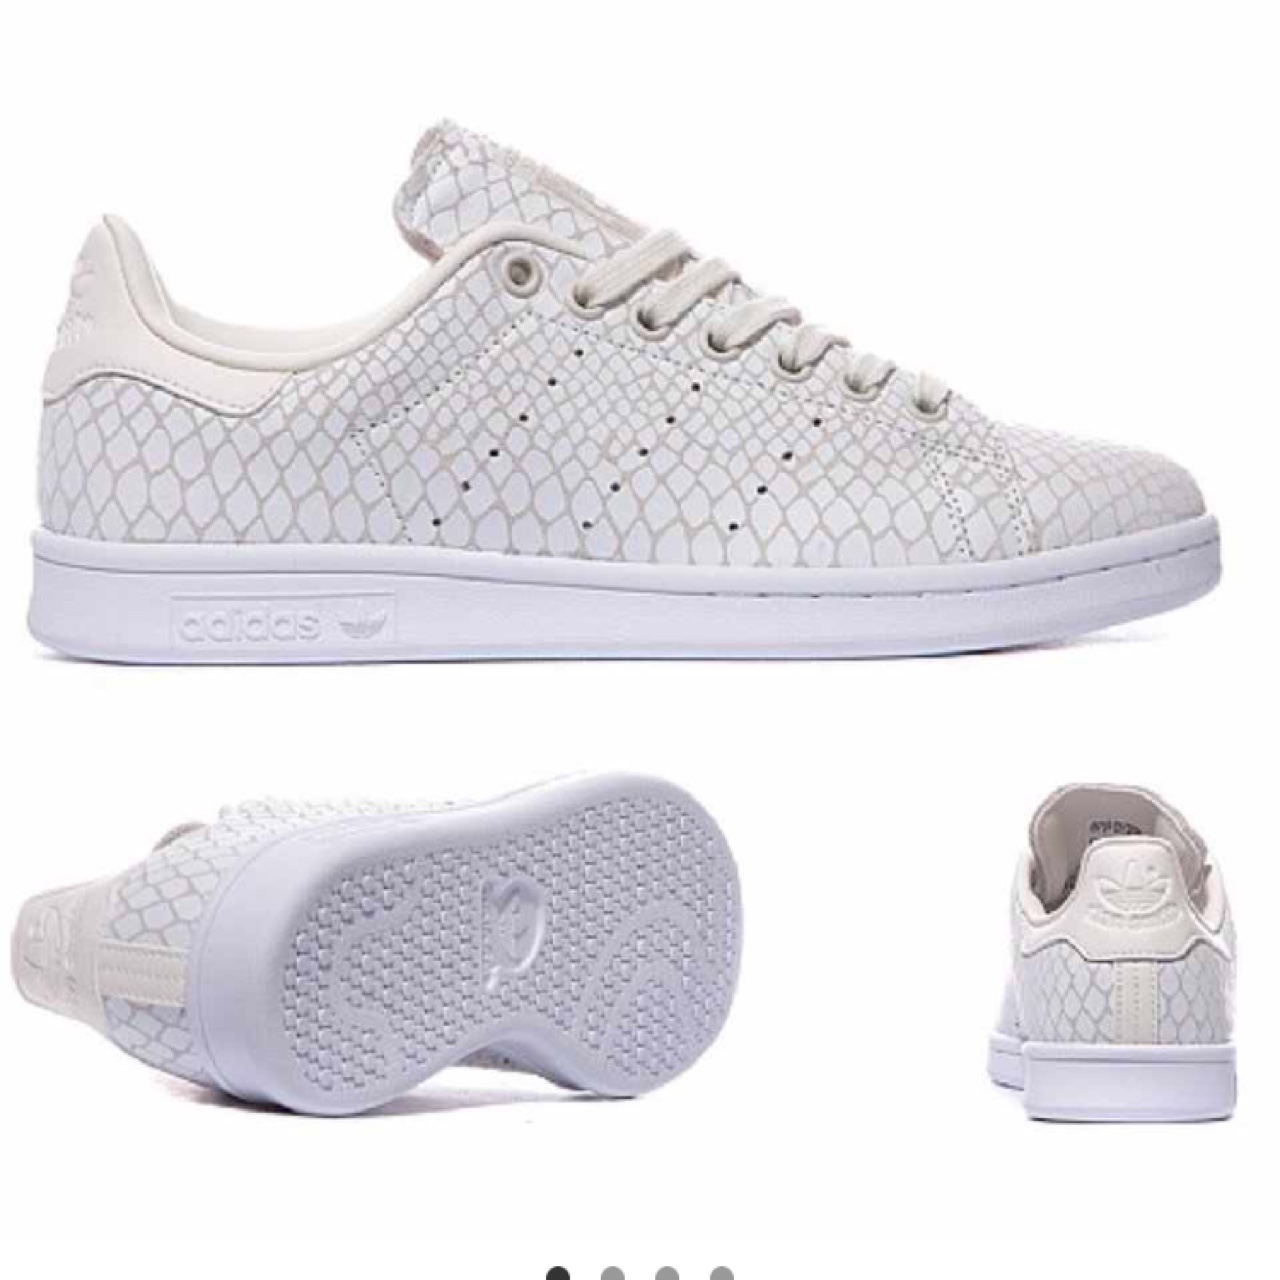 reputable site 9acbf f9cd7 * ORIGINAL ADIDAS STAN SMITH * ~ Off white,... - Depop